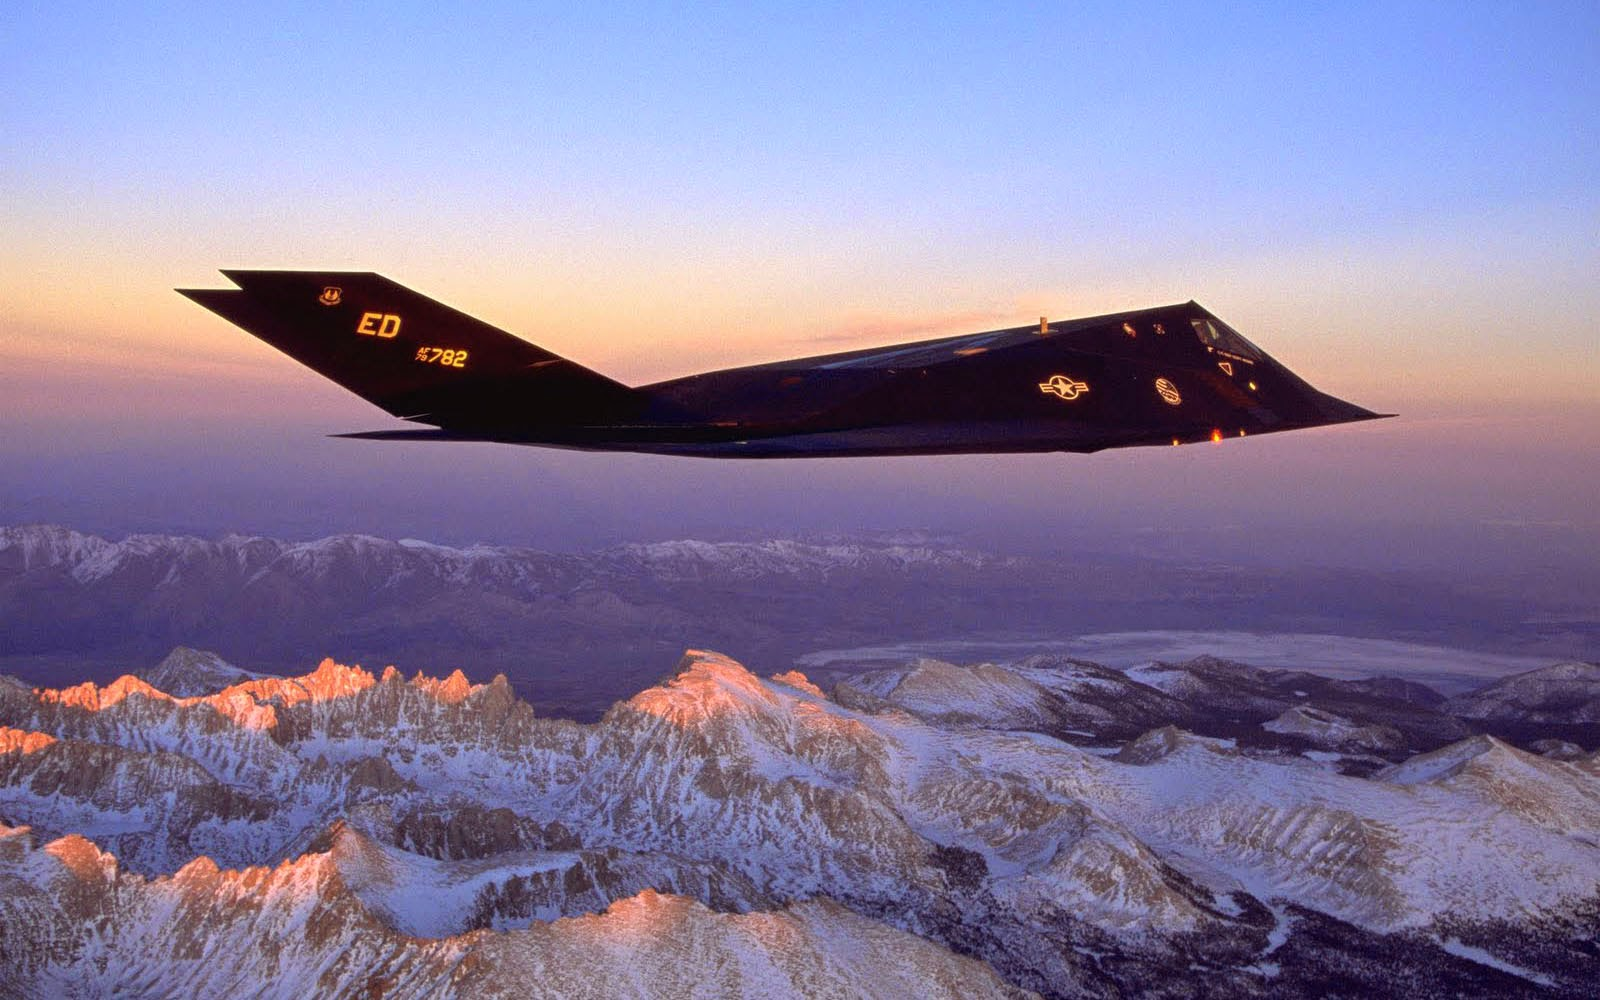 wallpapers: Lockheed F-117 Nighthawk Aircraft Wallpapers